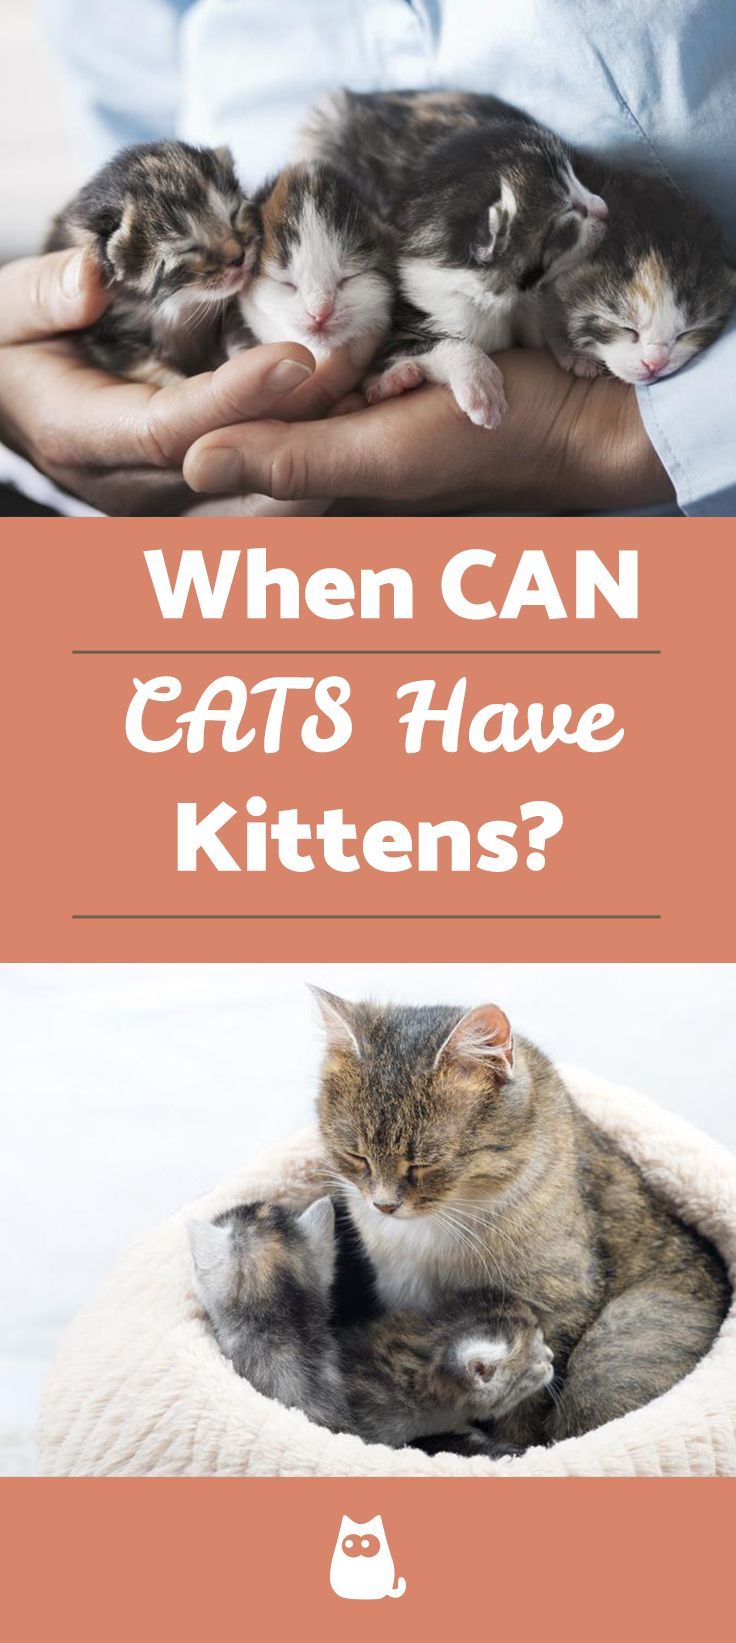 At What Age Can Cats Have Kittens Con Imagenes